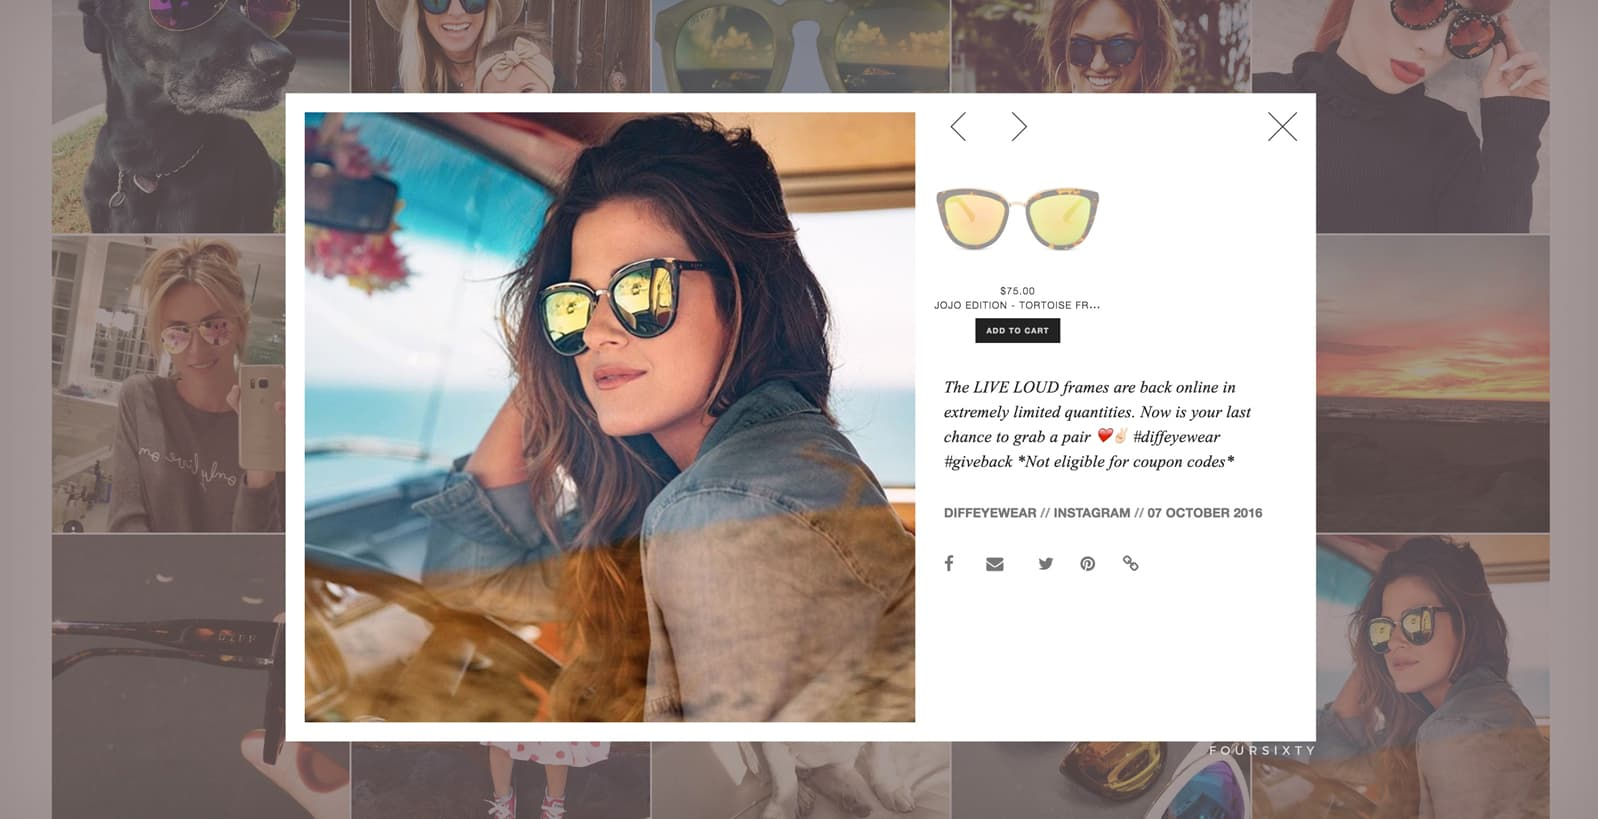 DIFF Eyewear Social Campaign, Ekko Media web design, video production and marketing